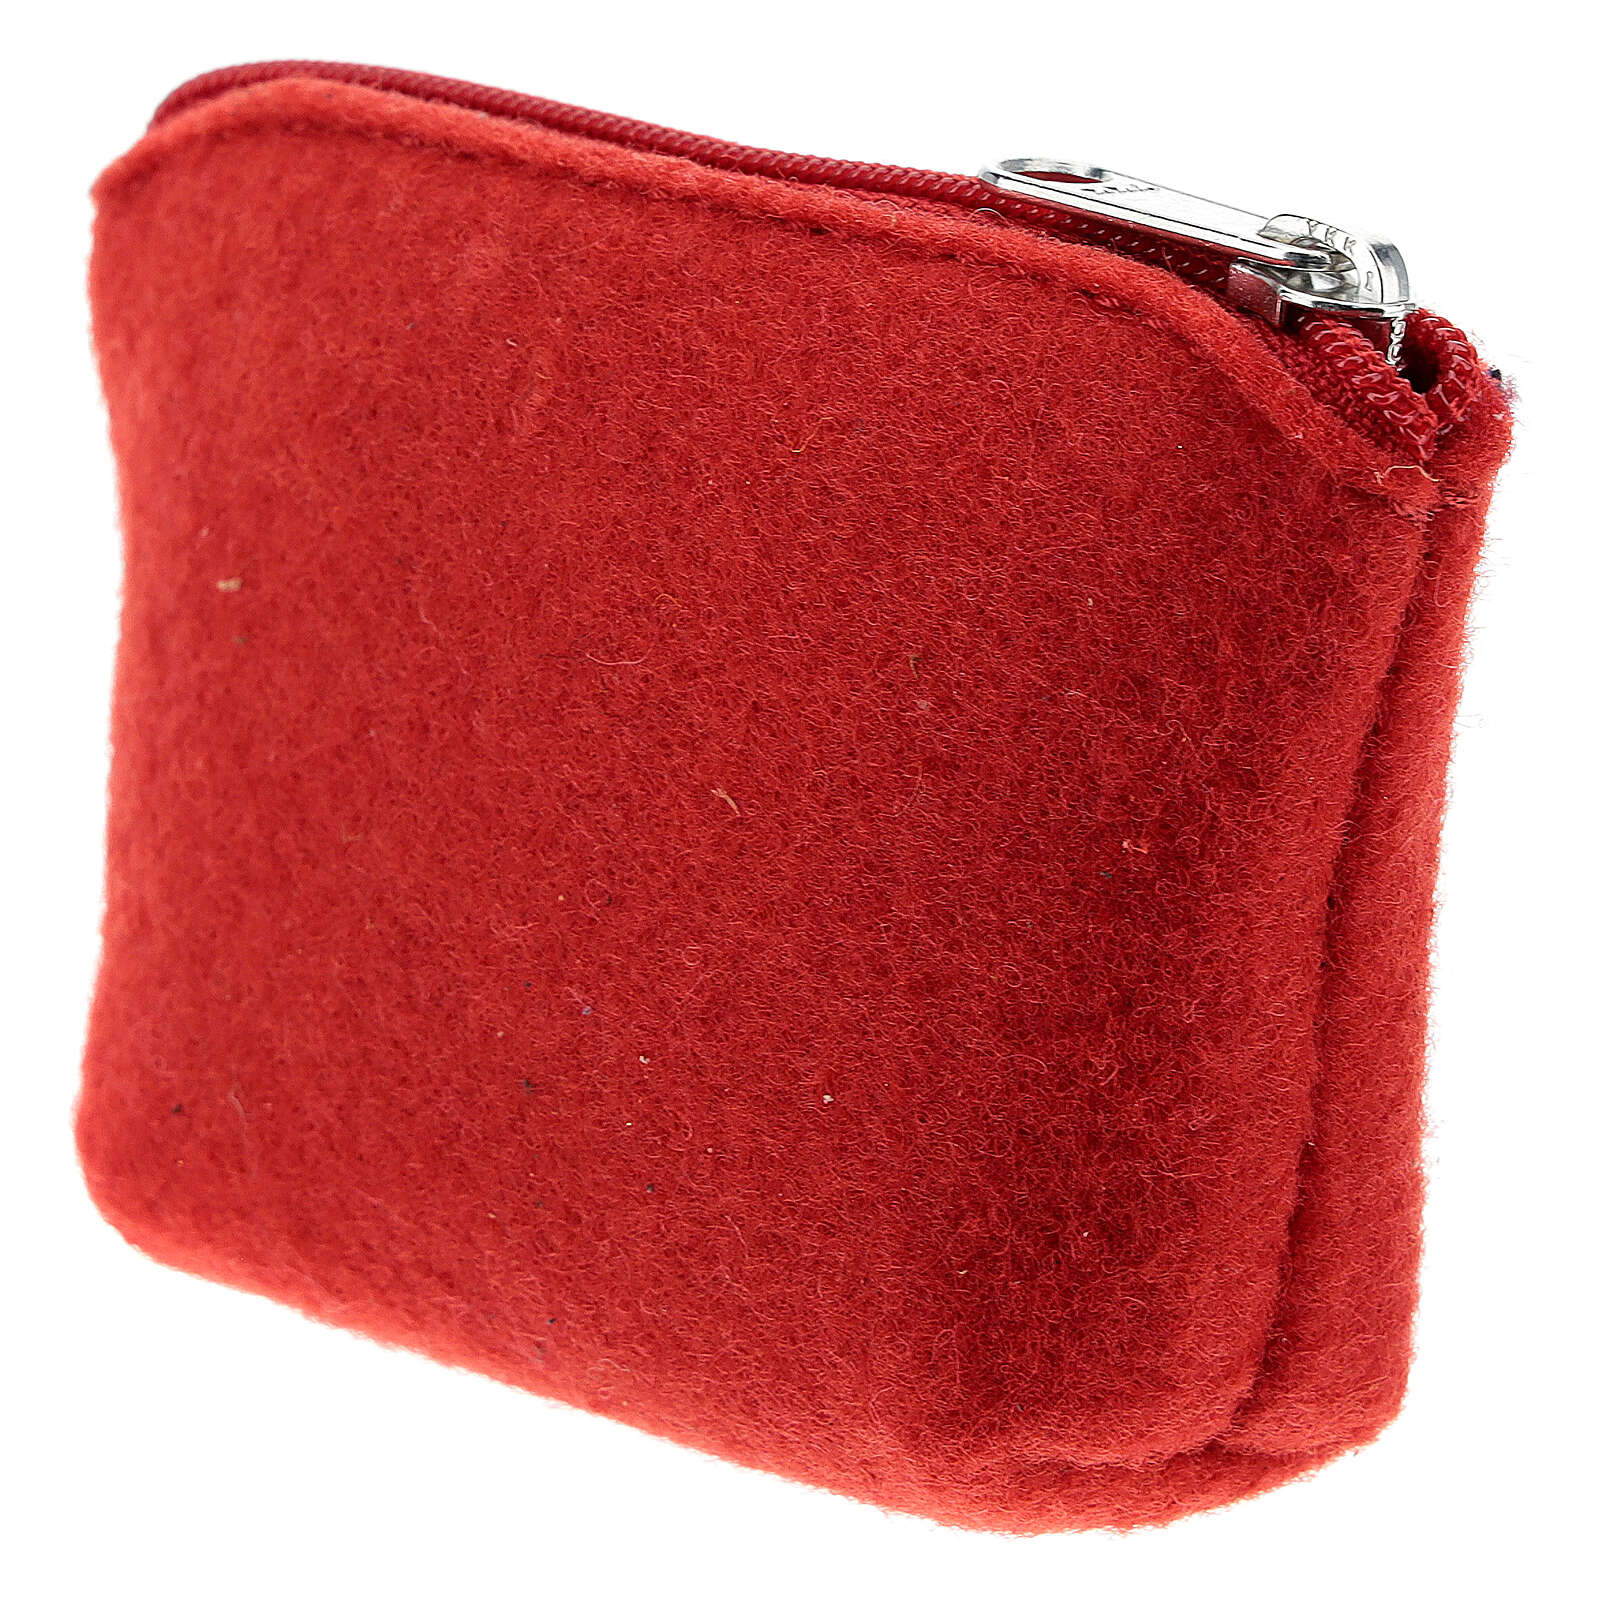 Divine Mercy rosary case red felt 3x4x1 in 4